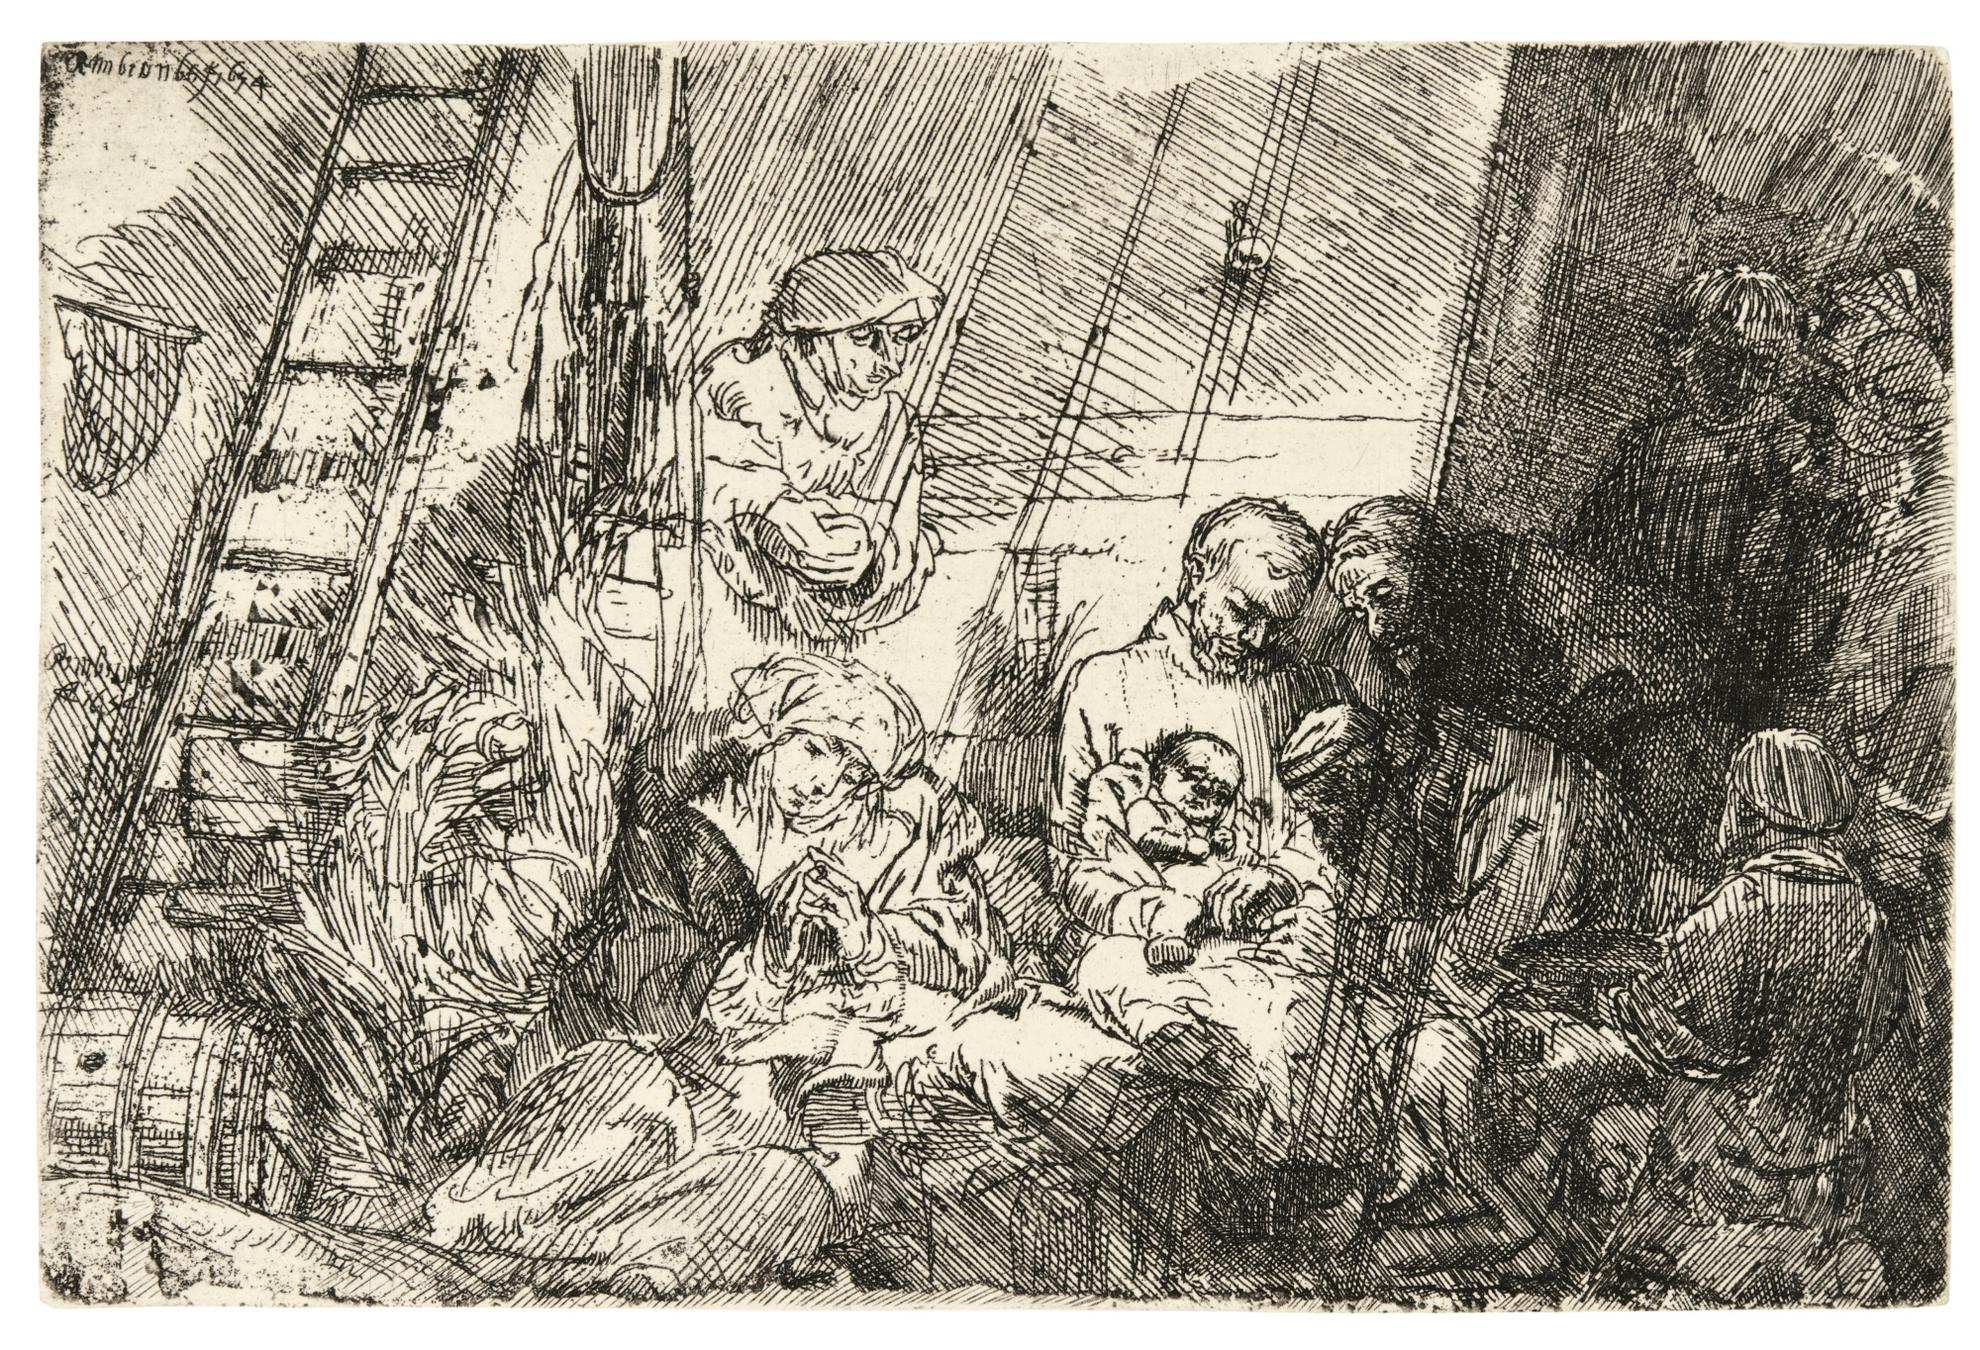 Rembrandt van Rijn-The Circumcision In The Stable (B., Holl. 47; New Holl. 280; H. 274)-1654